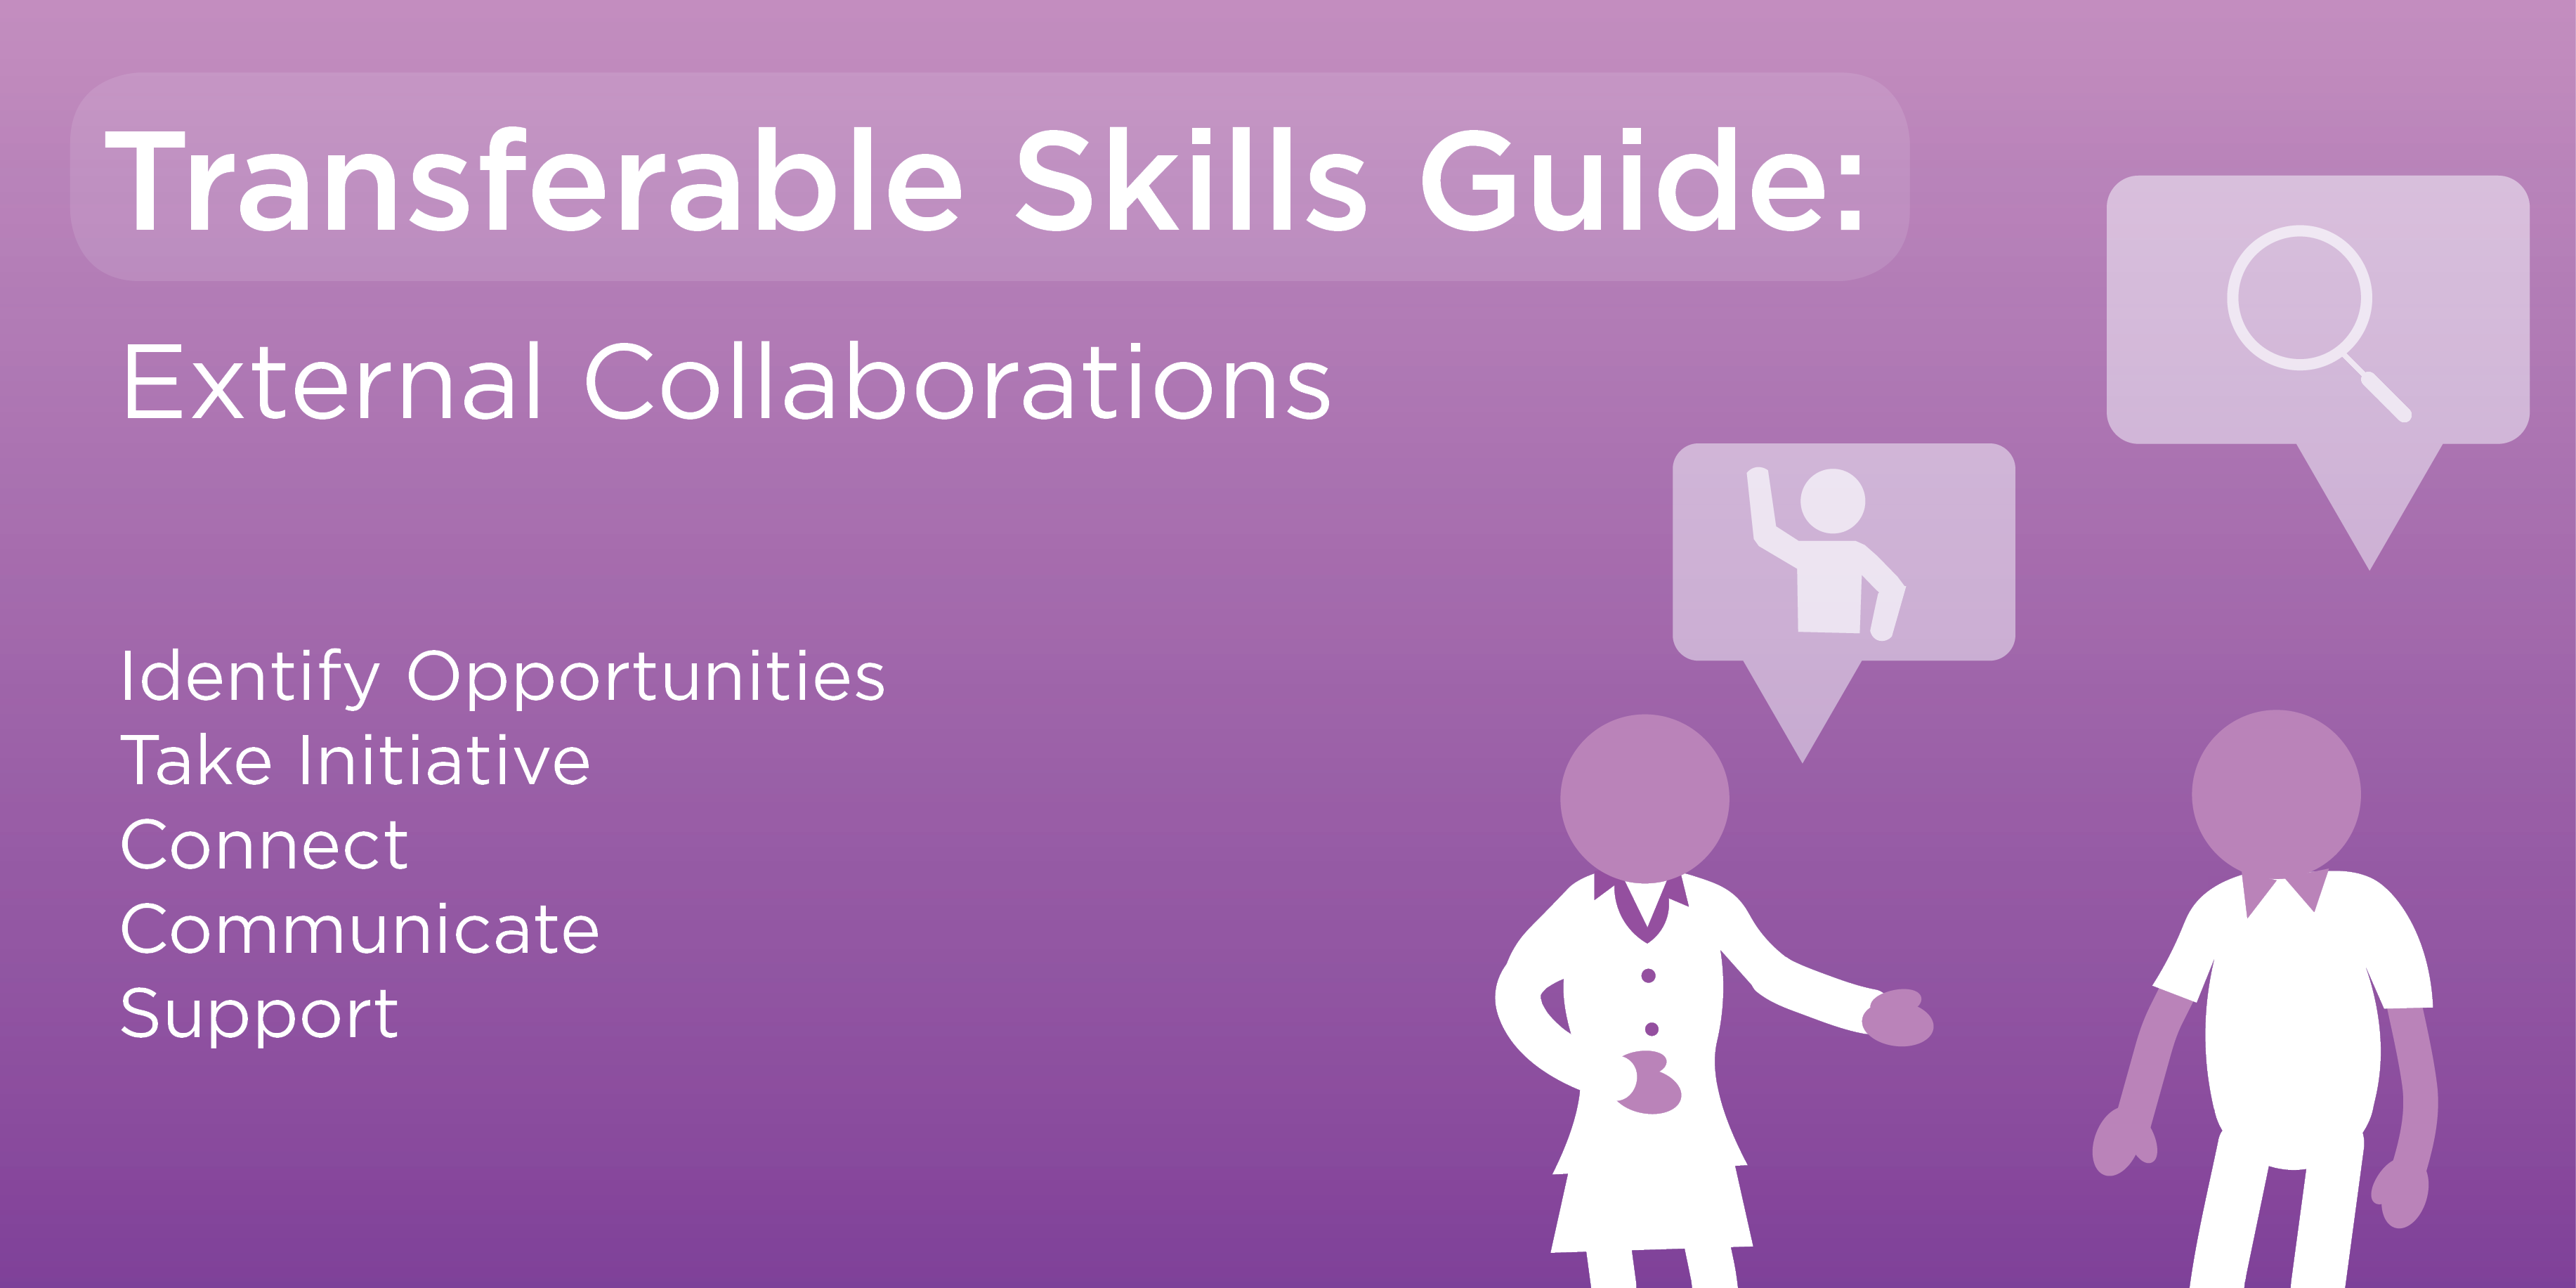 Transferable skills guide